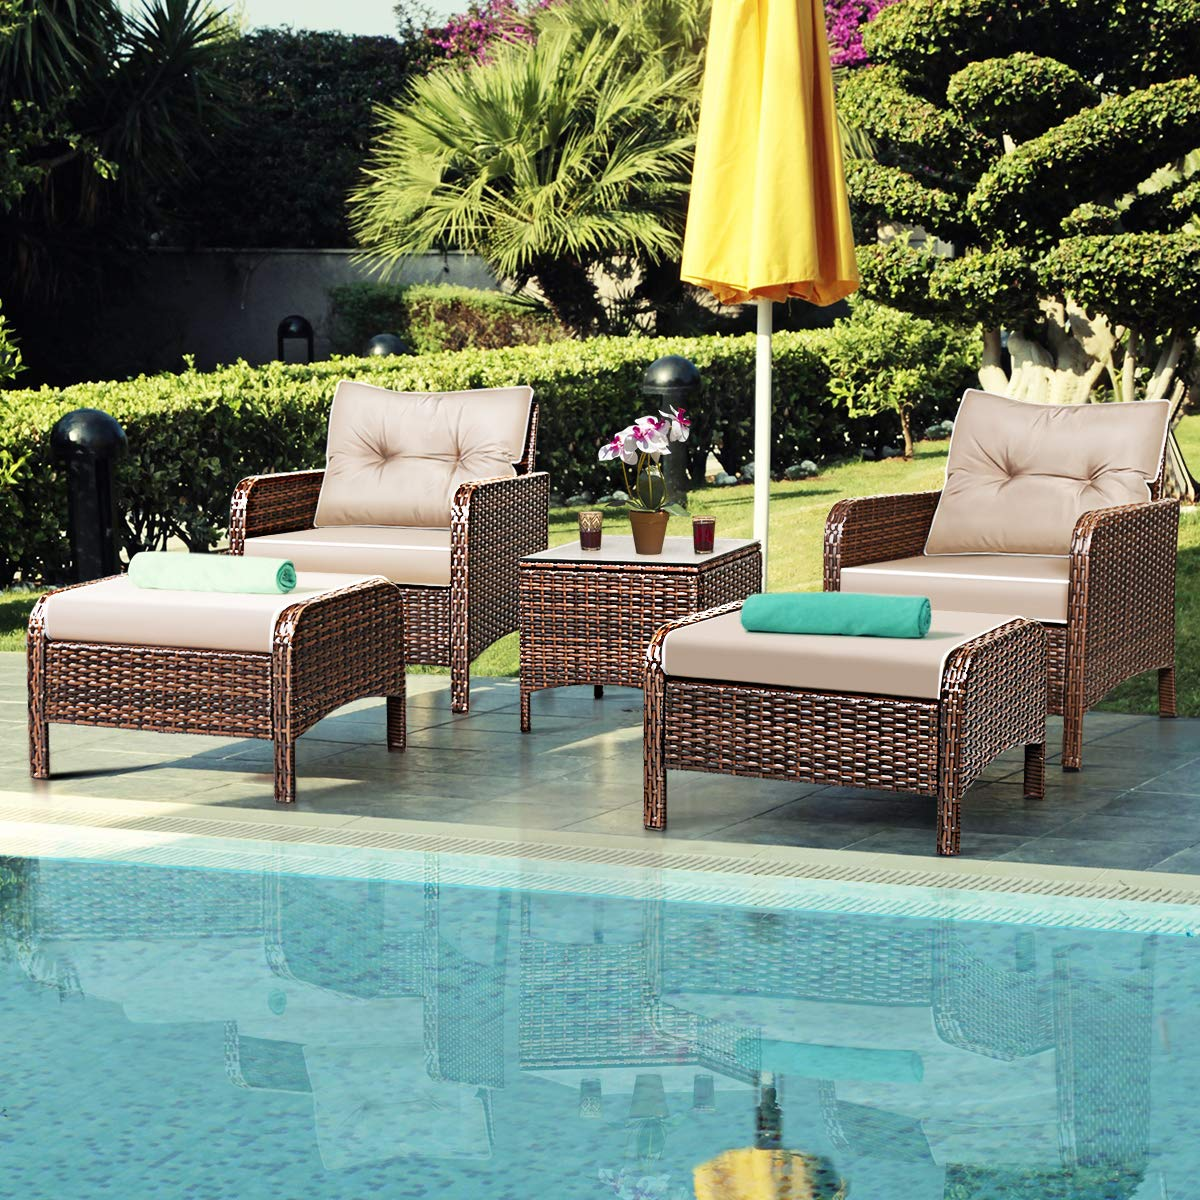 Tangkula Wicker Furniture Set 5 Pieces PE Wicker Rattan Outdoor All Weather Cushioned Sofas and Ottoman Set Lawn Pool Balcony Conversation Set Chat Set by Tangkula (Image #2)